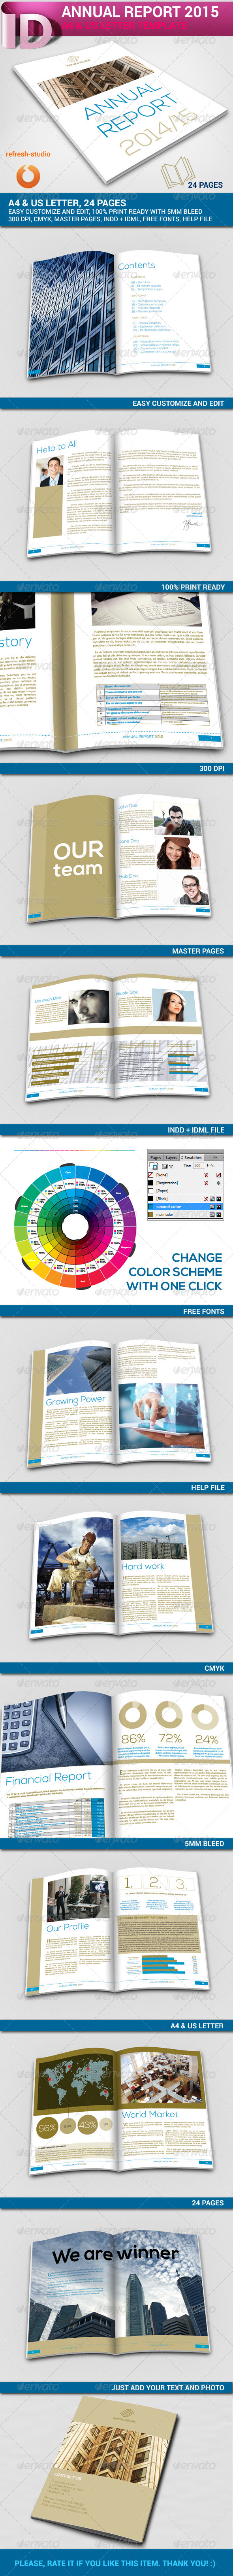 GraphicRiver Annual Report A4 US 24 Pages 8742542